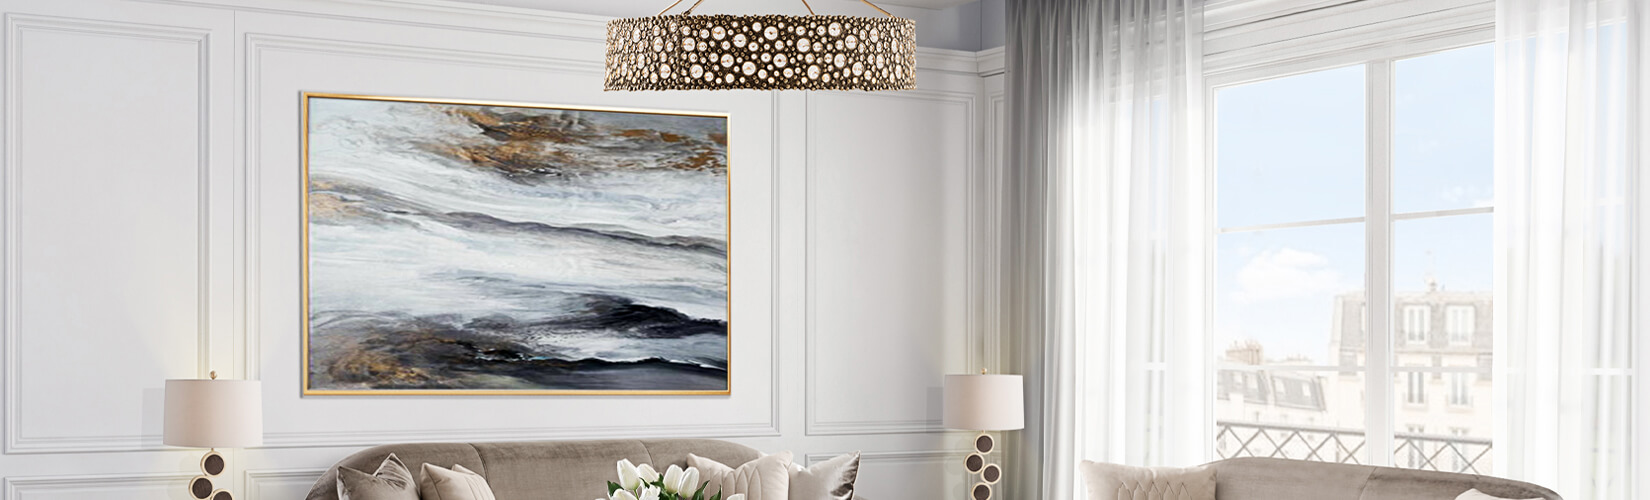 Bring Empty Walls to Life with These 8 Beautiful Wall Decor Ideas